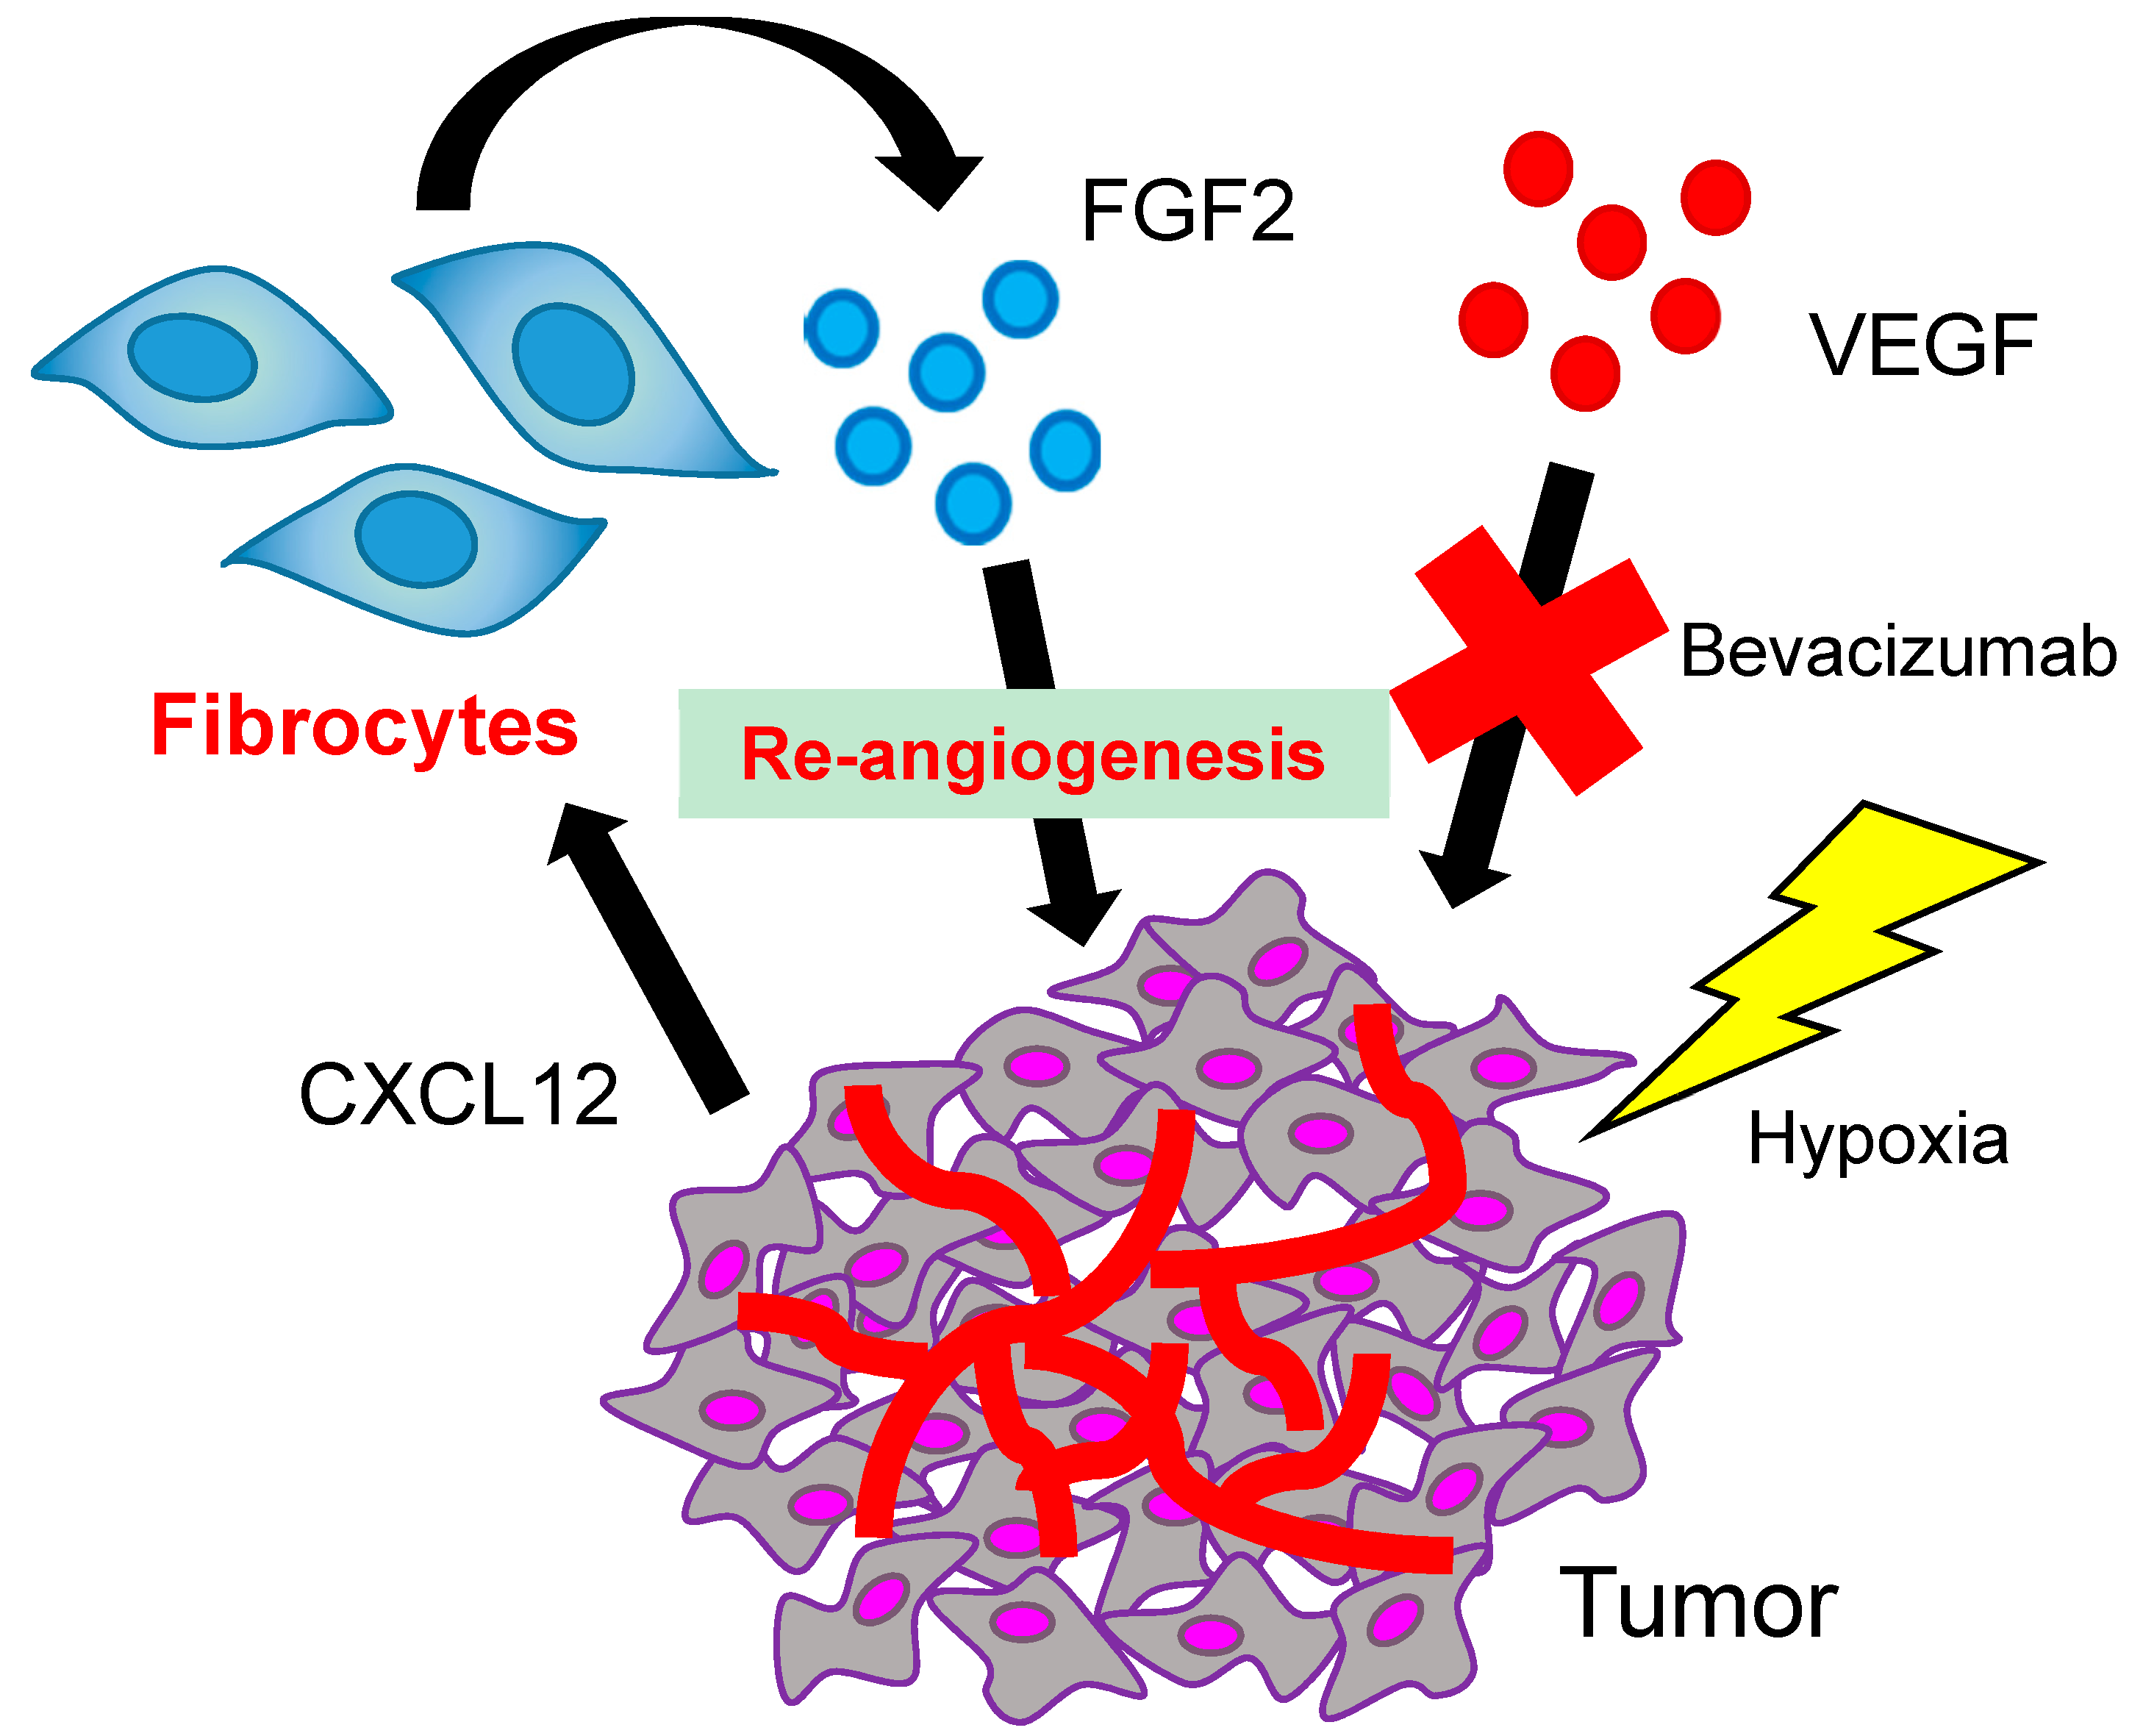 Direct Effects of Anti-Angiogenic Therapies on Tumor Cells